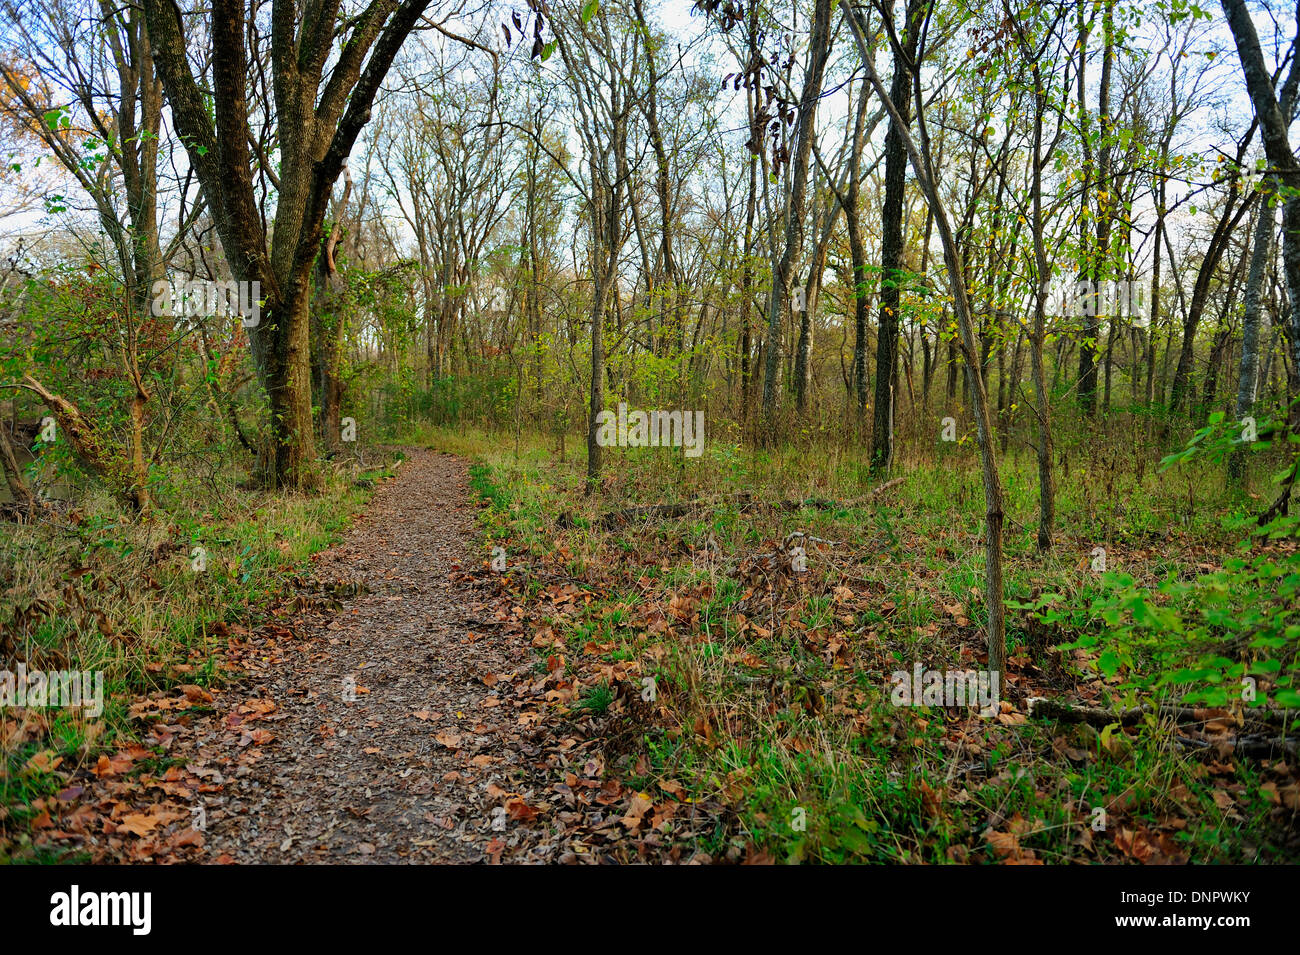 Path in the forest of Towne park, Mc Kinney, Texas, USA Stock Photo